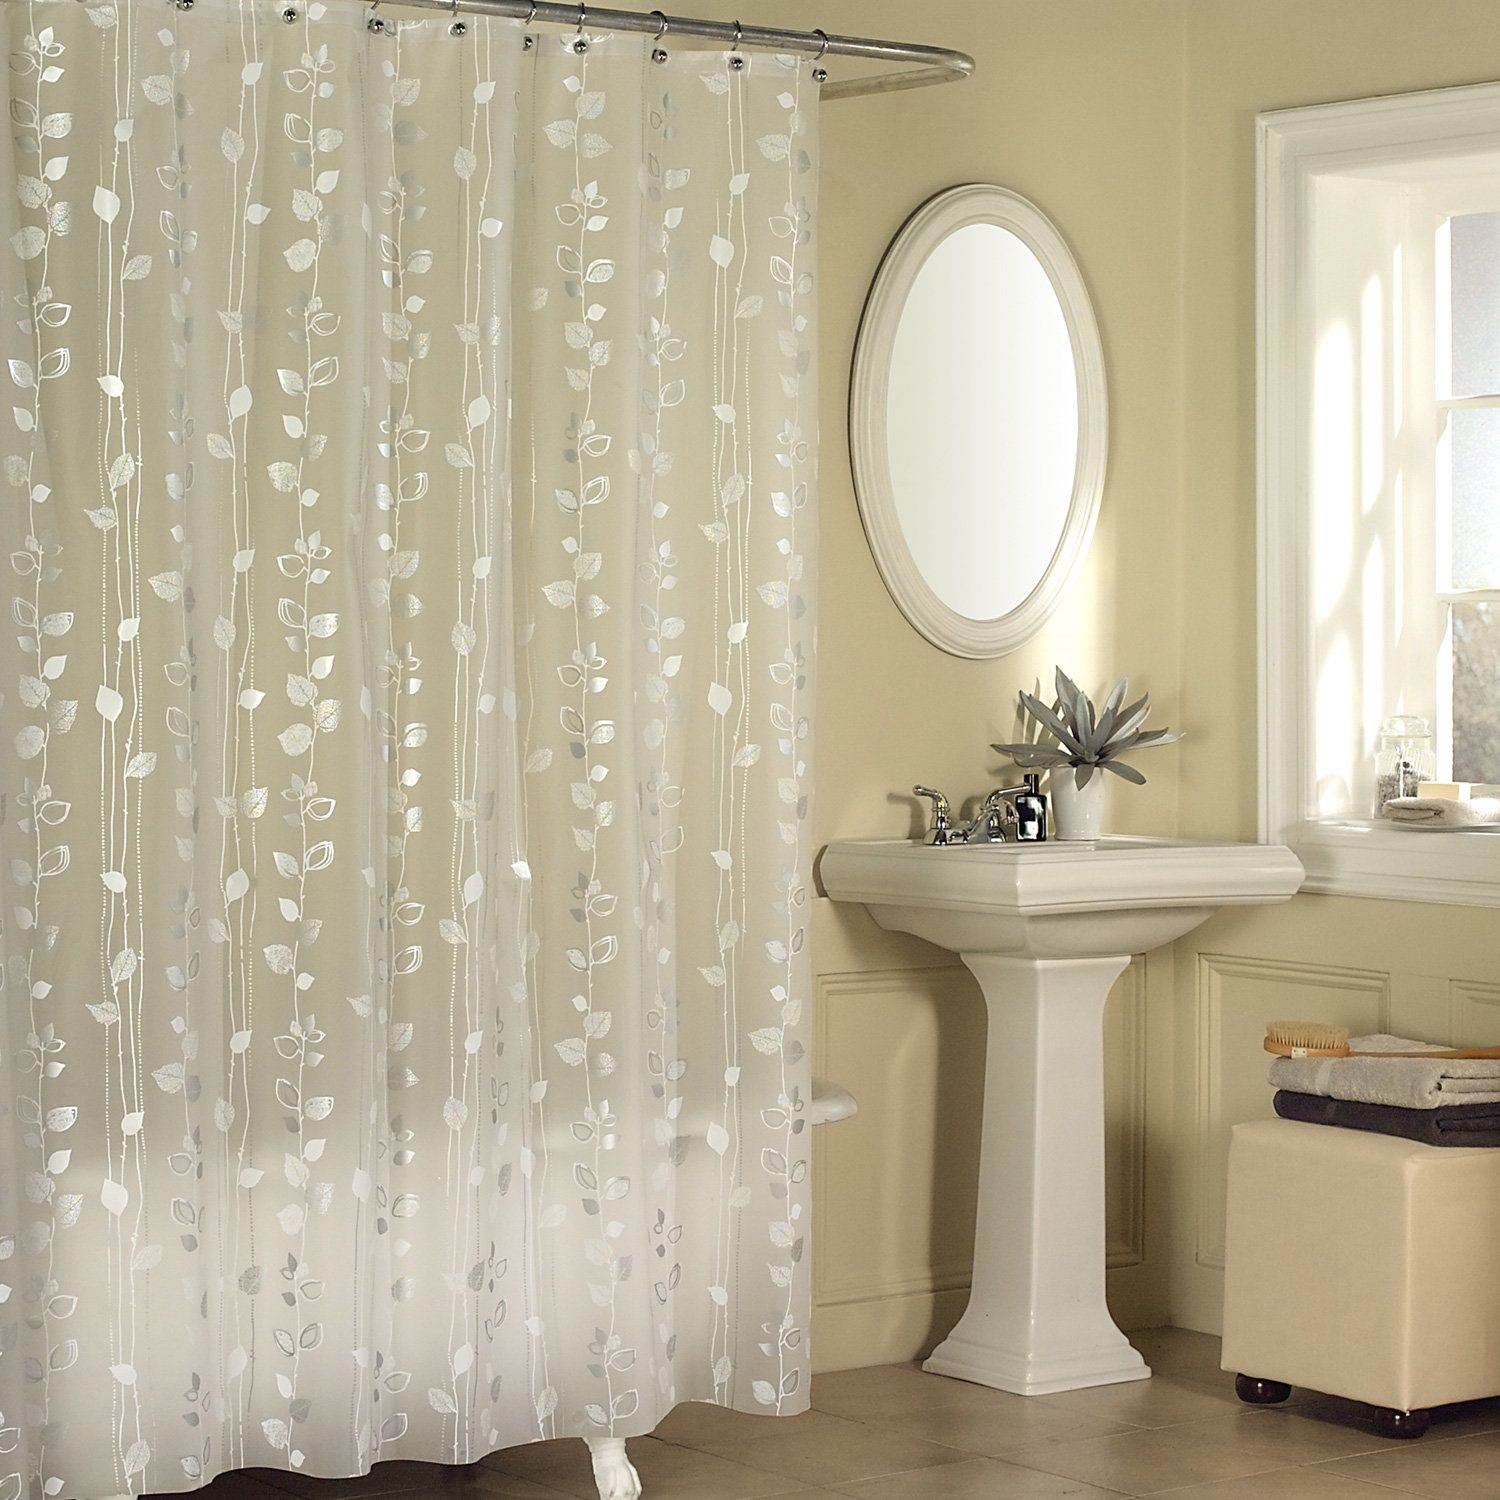 12 Choices How To Clean A Plastic Shower Curtain Should Be Vinyl